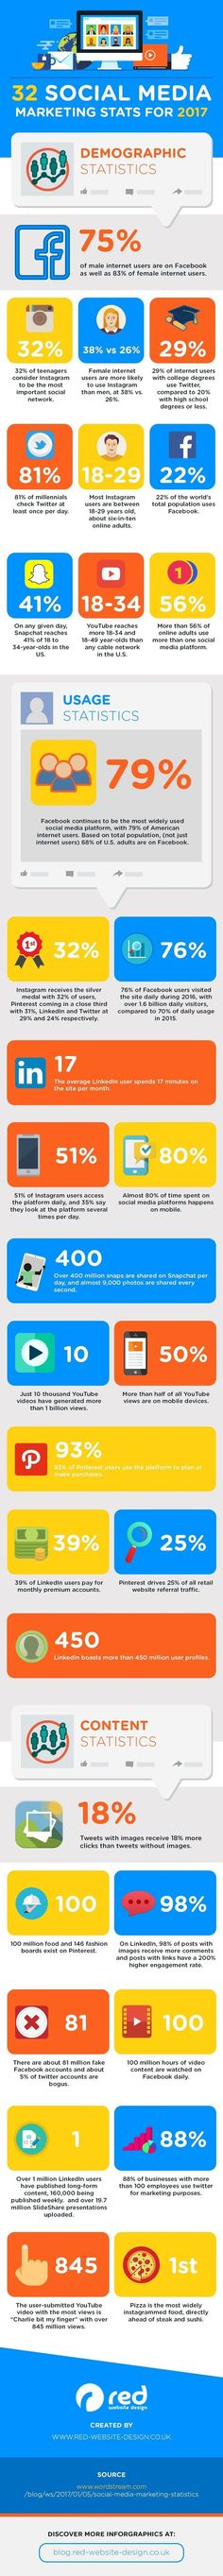 awesome Top social media marketing stats for 2017... Follow the link listed on the bottom of the infographic for more great information! -- Jaye